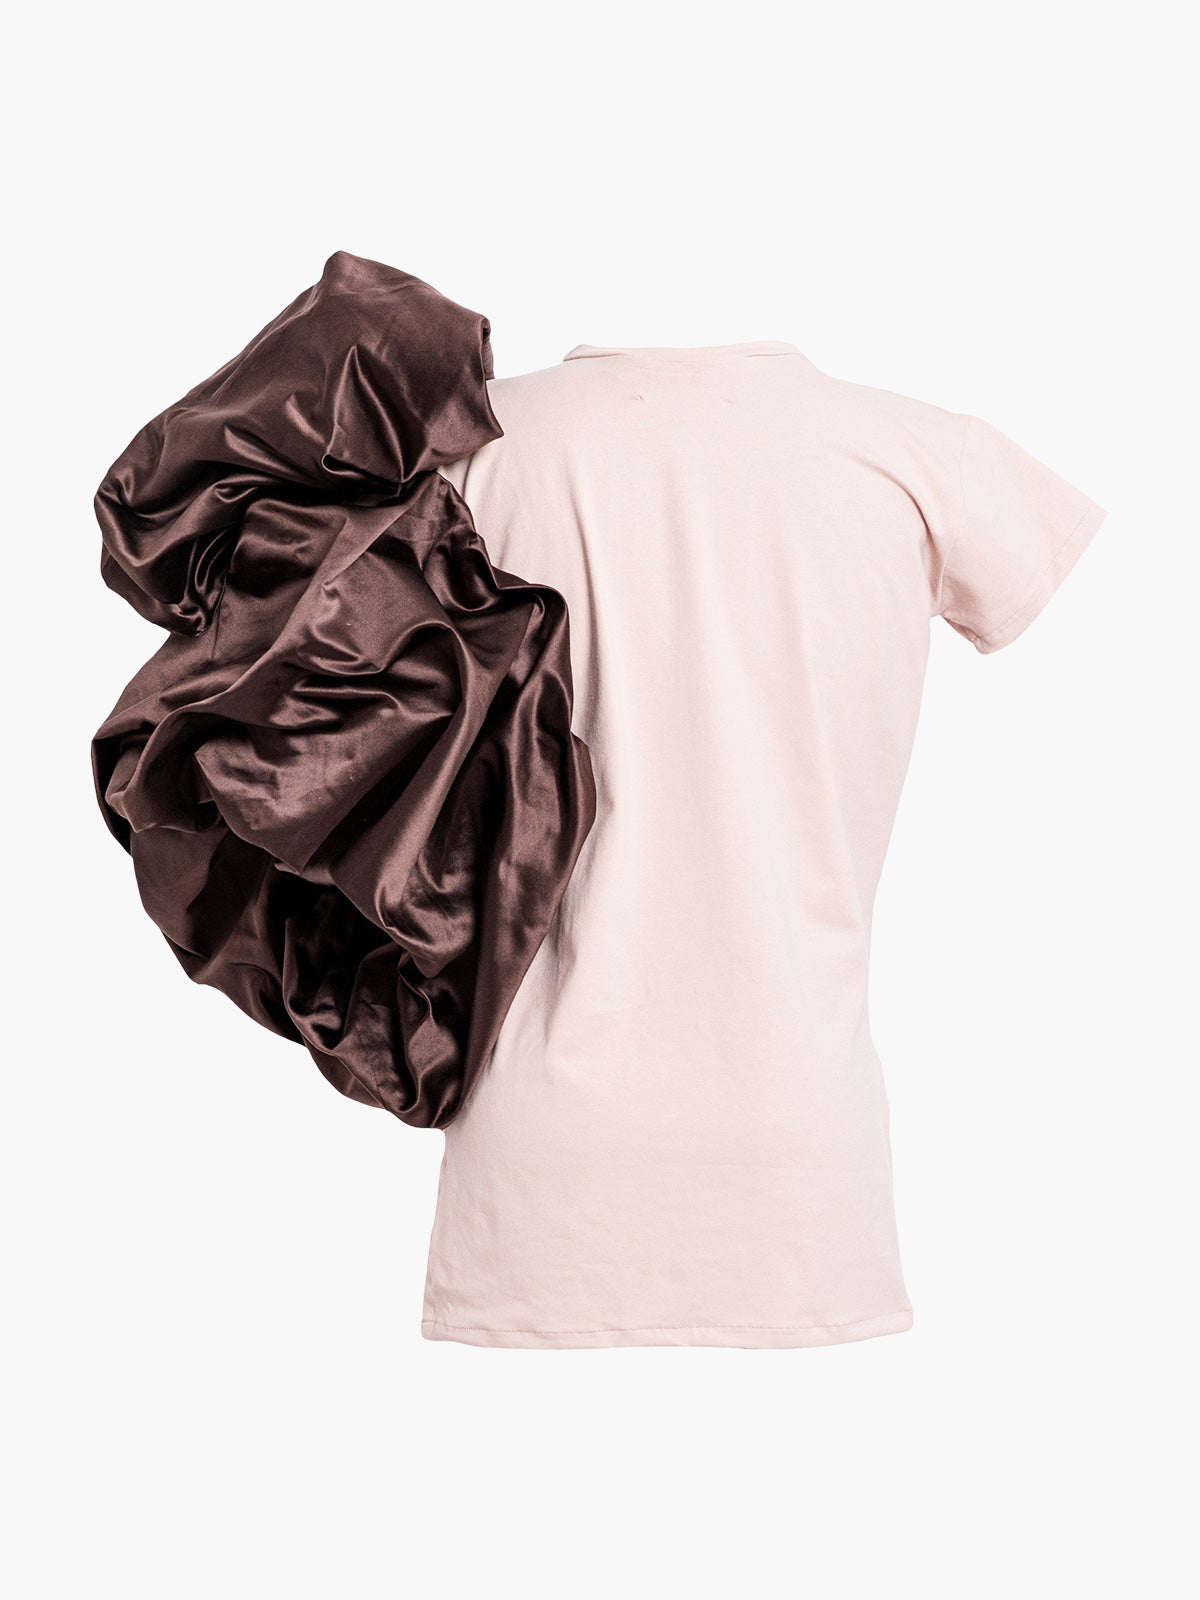 Abolengo T-Shirt | Pink With Brown